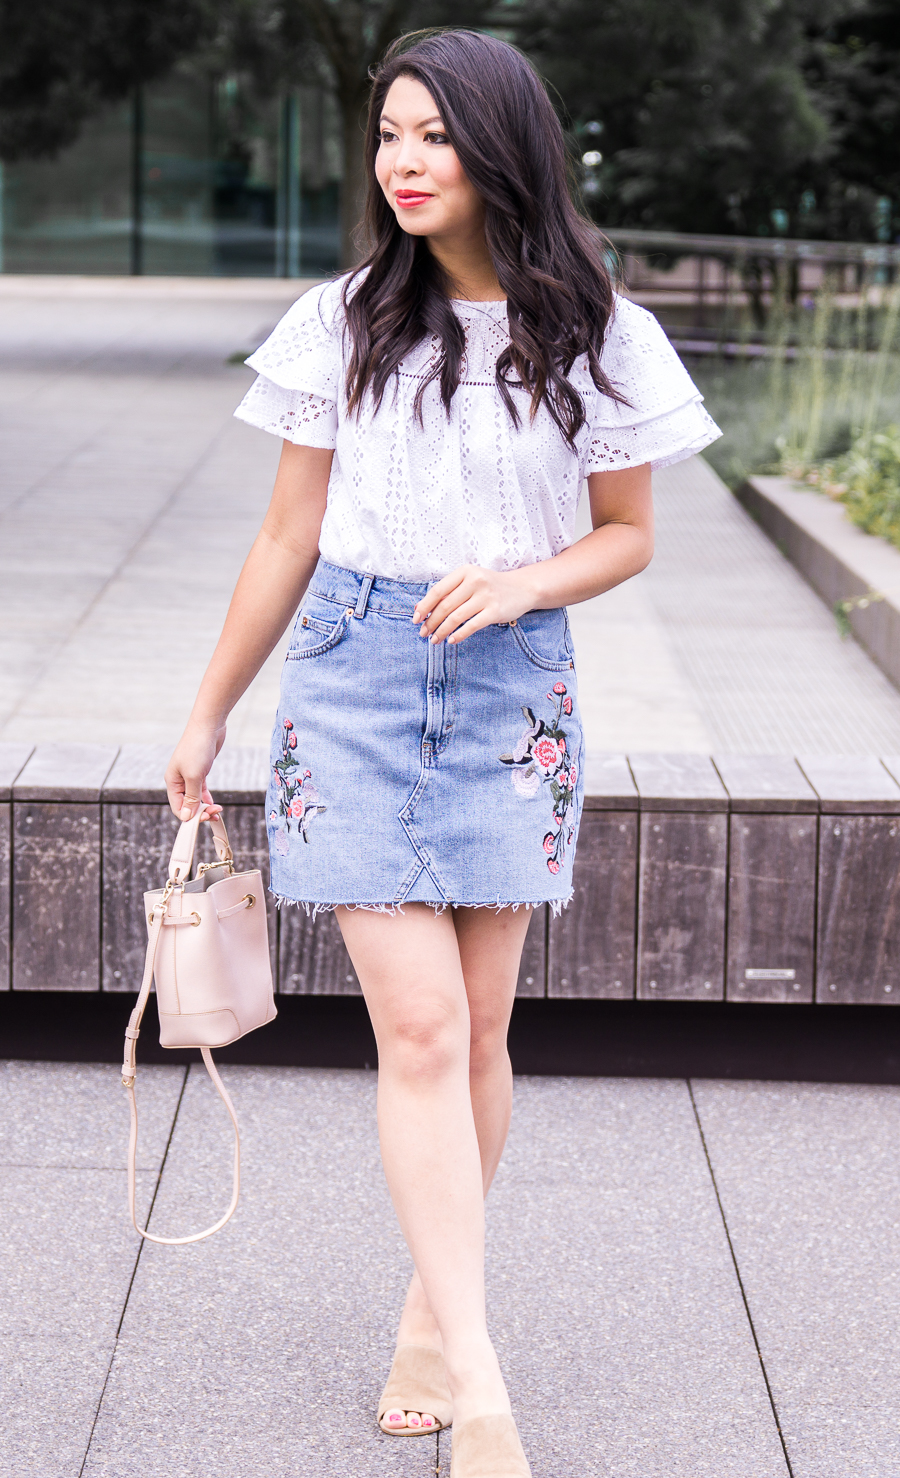 621c31c15042 Embroidered denim skirt, eyelet ruffle top, Seattle fashion blogger, cute  summer outfit